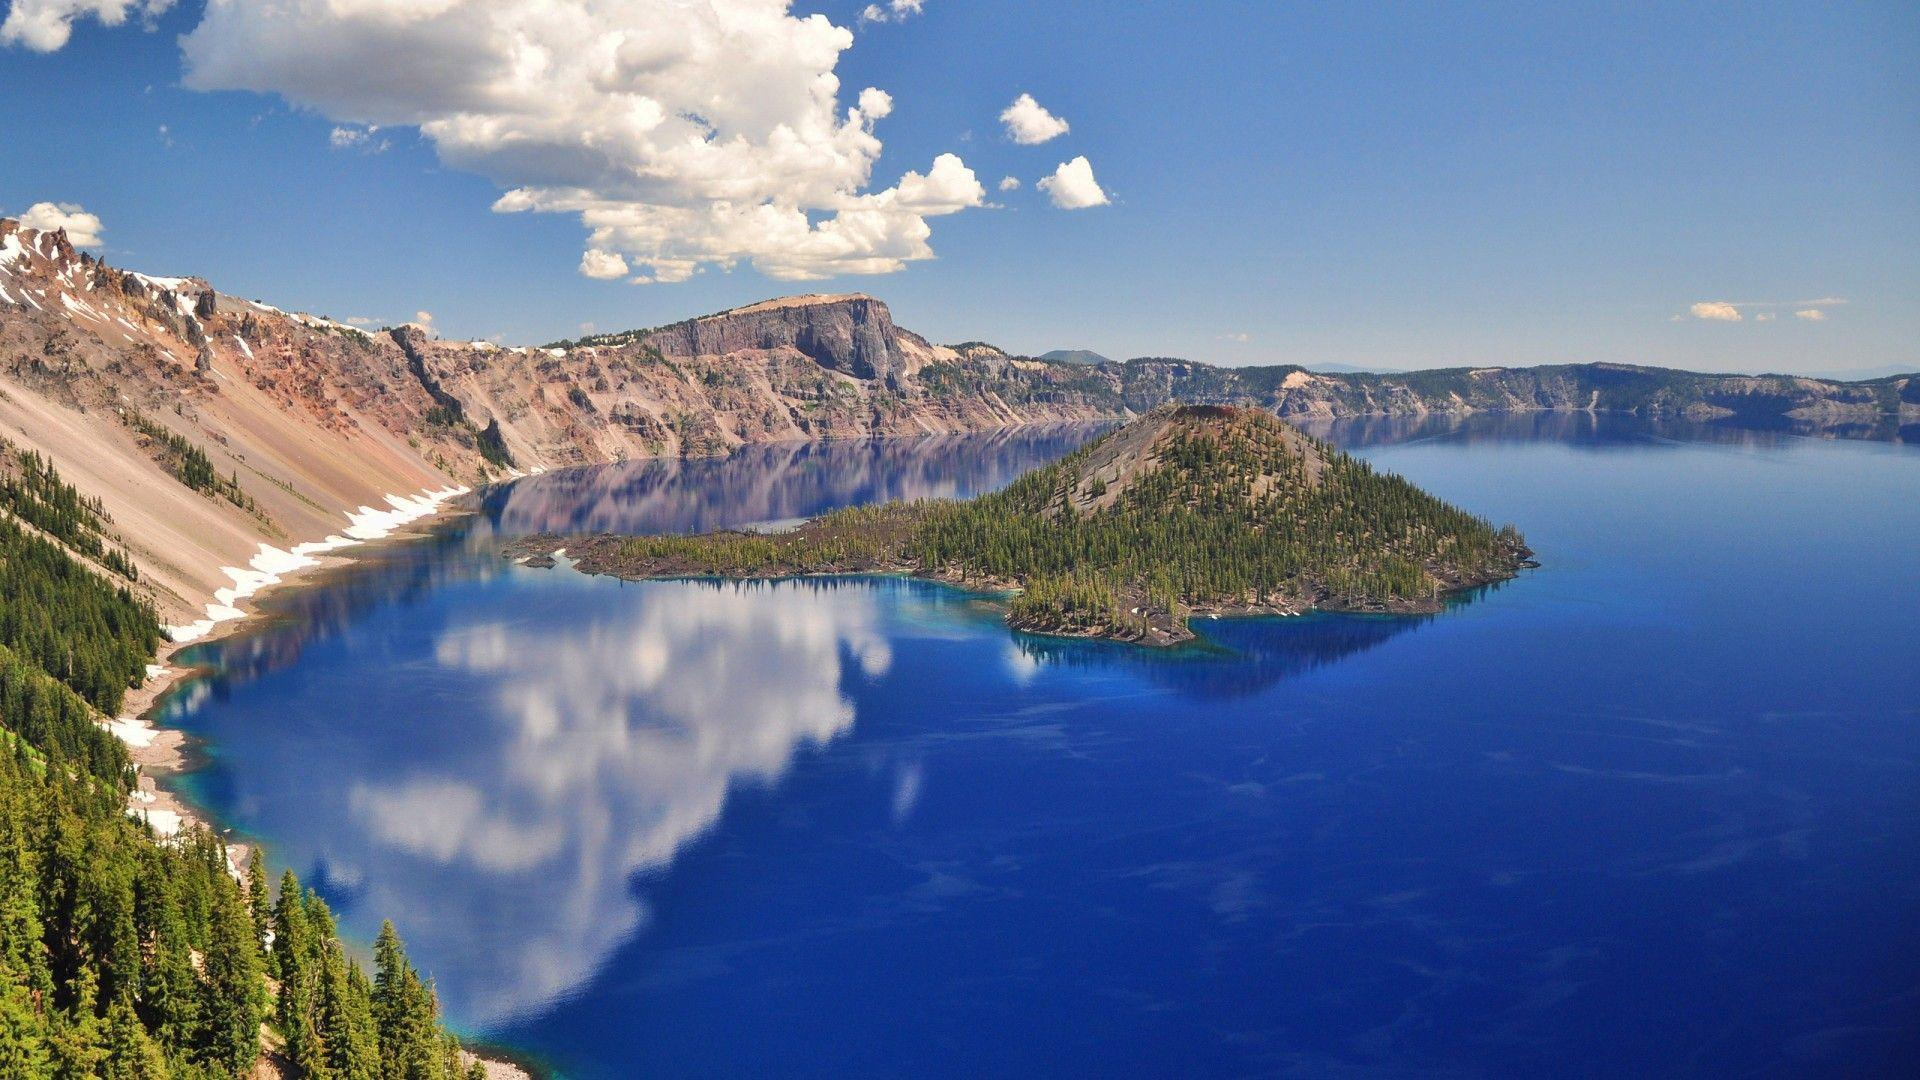 Crater Lake Wallpapers | HD Wallpapers